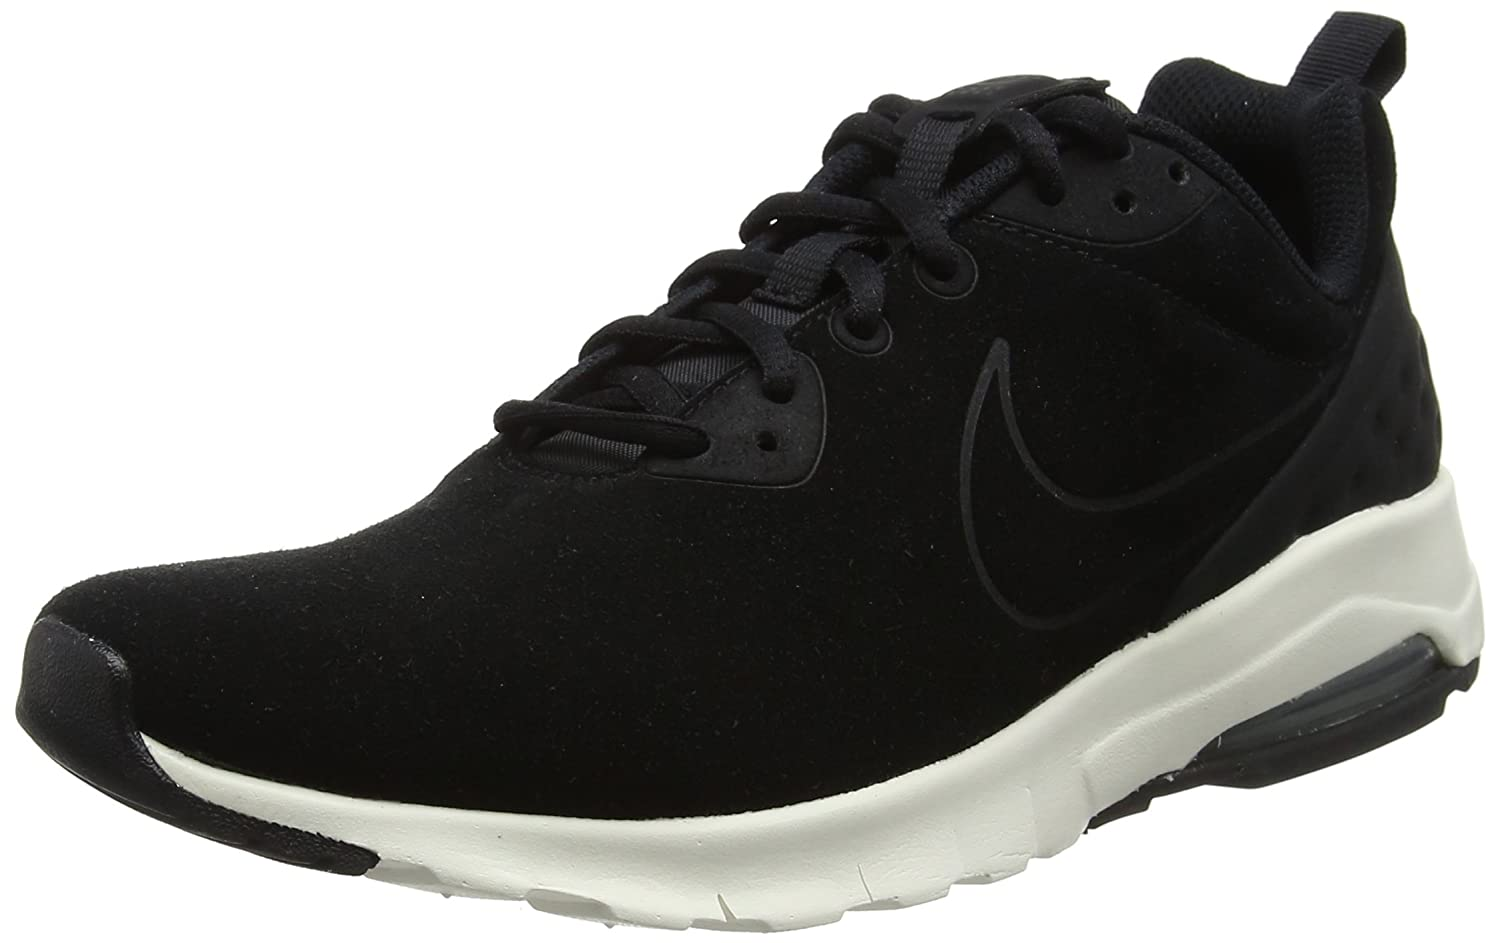 Nike Air Max Motion LW Premium Men's Running Shoes 861537